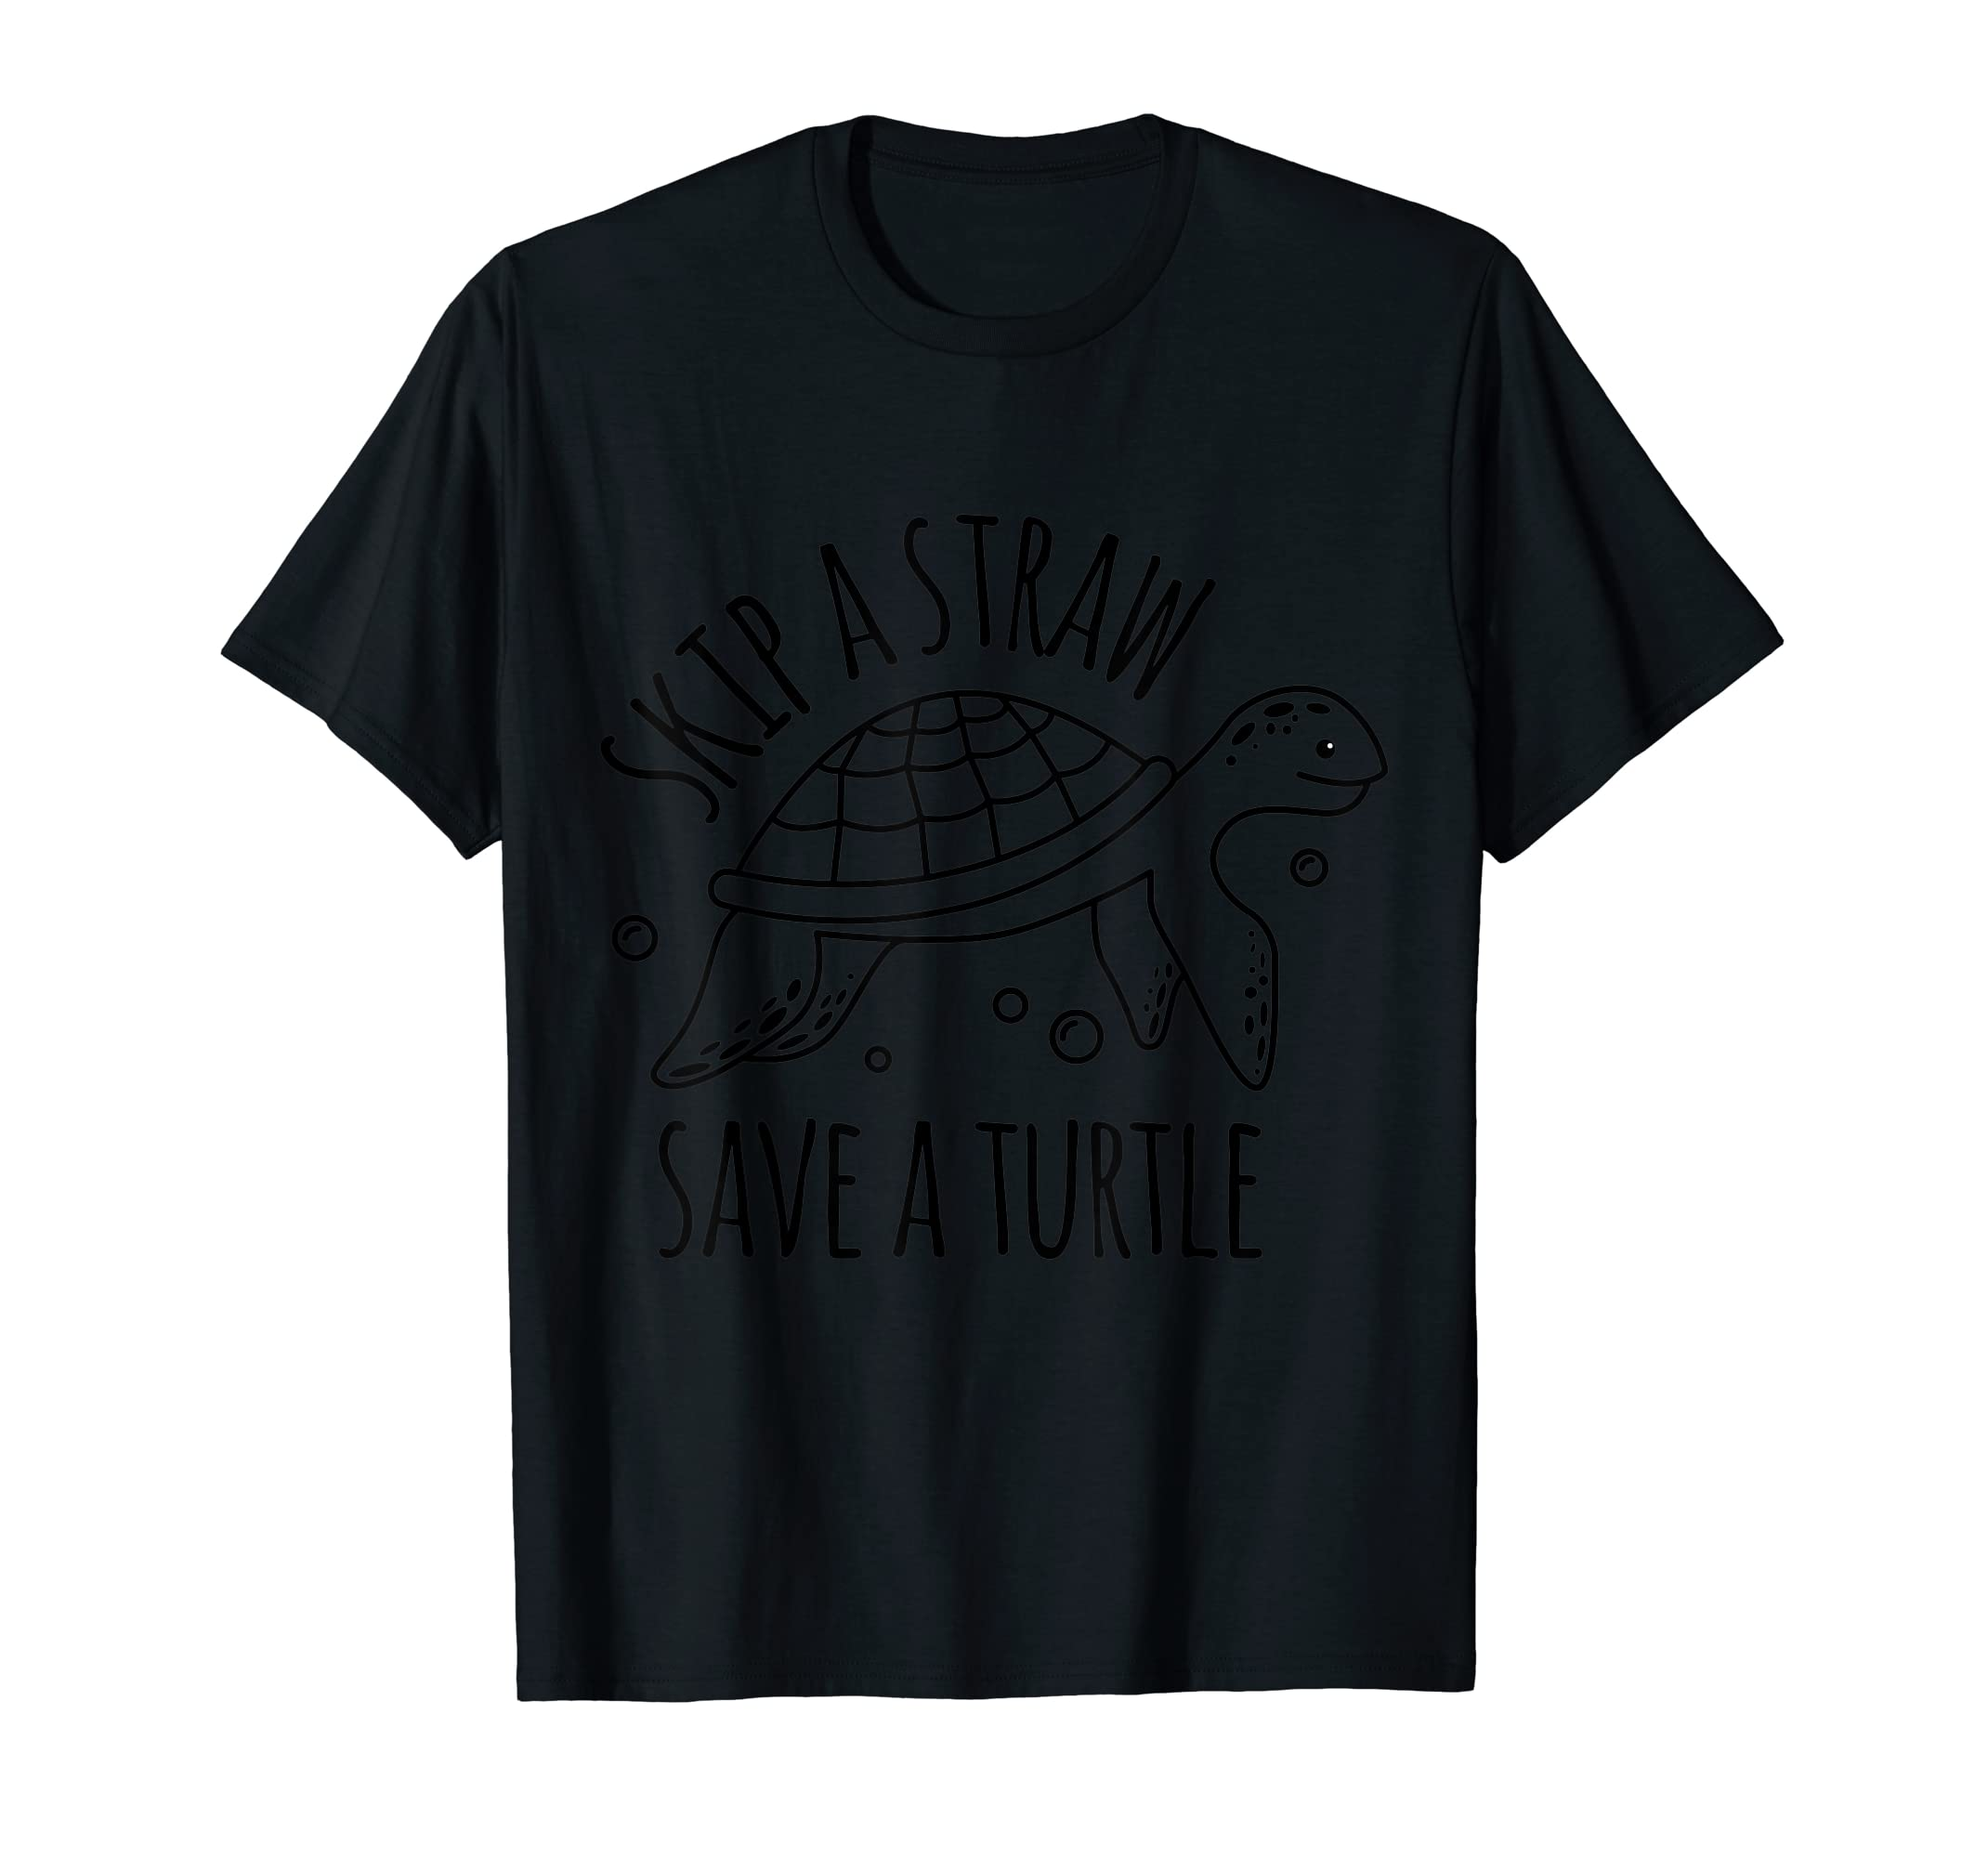 Skip A Straw Save A Turtle Ocean and Sea Lovers T-Shirt-Men's T-Shirt-Black